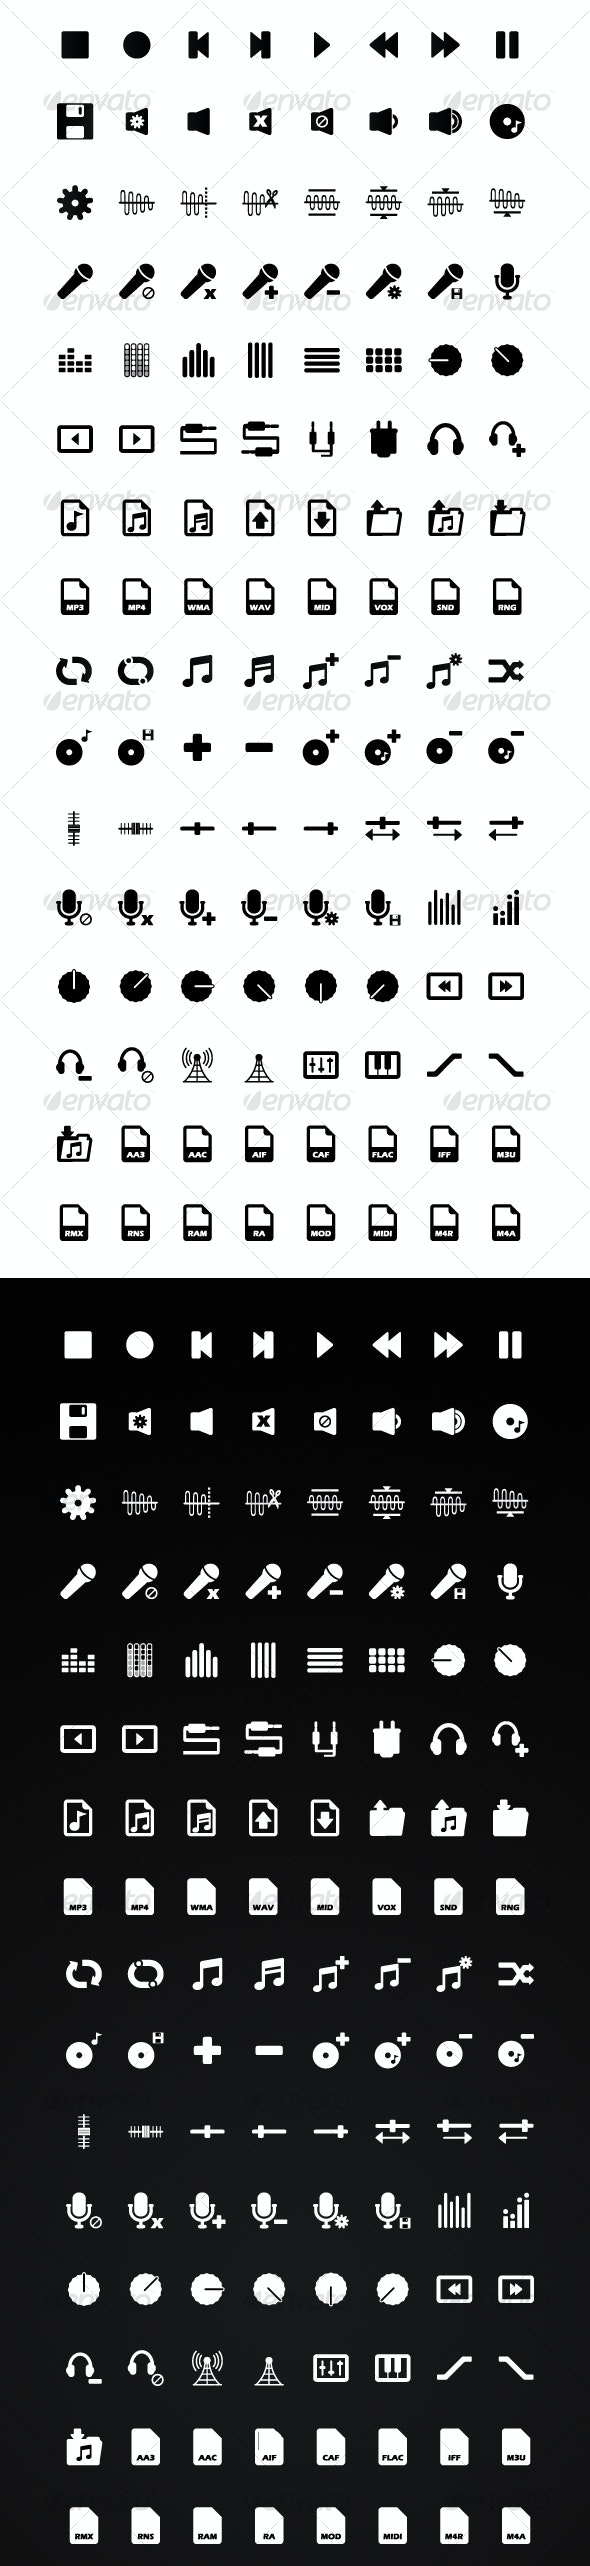 128 Audio / Music Application Icons: Black & White